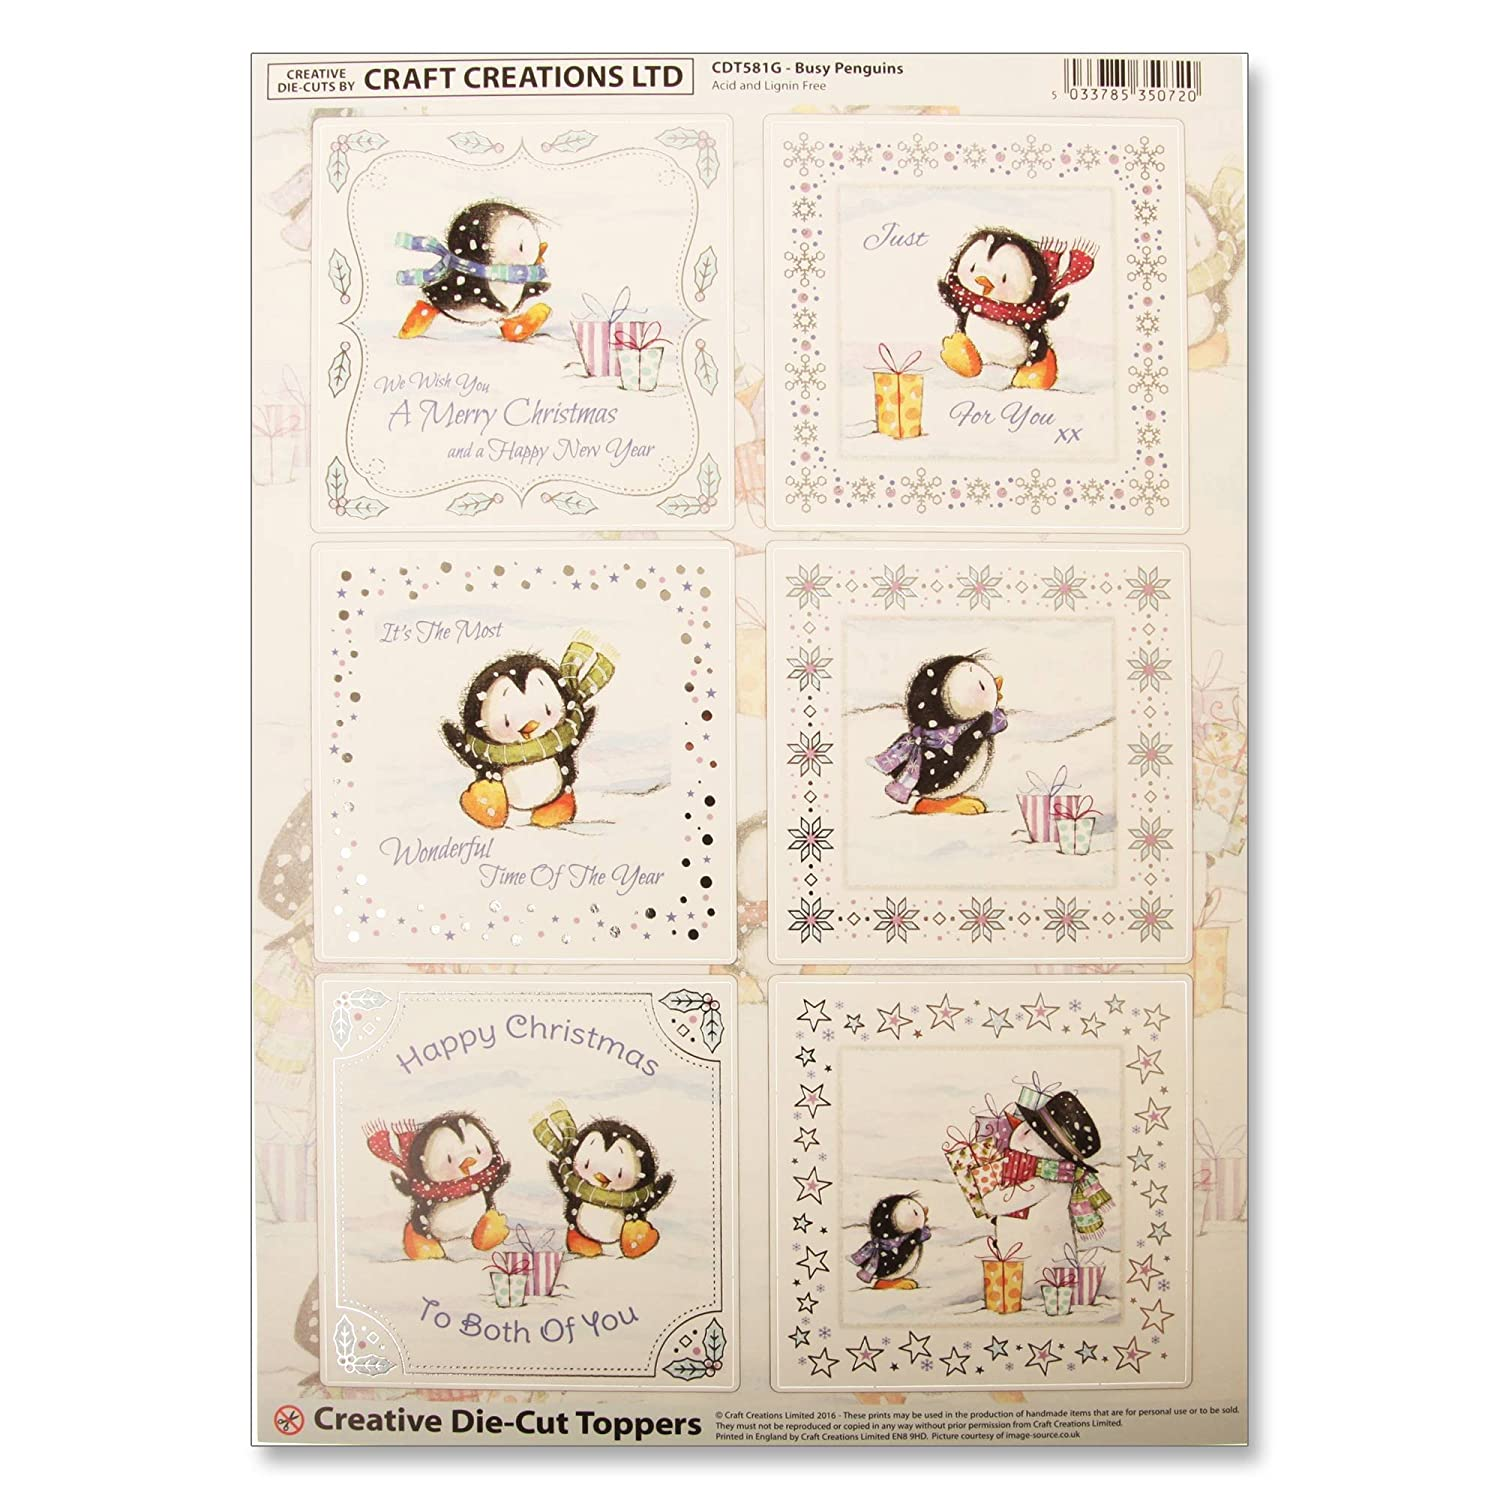 Craft Creations Christmas Creative Die-Cut Card Toppers - CDT581G Busy Penguins - Penguins Xmas Scarf - Silver Foil Borders - A4 210x297mm 250gsm 300mic Craft Creations Ltd